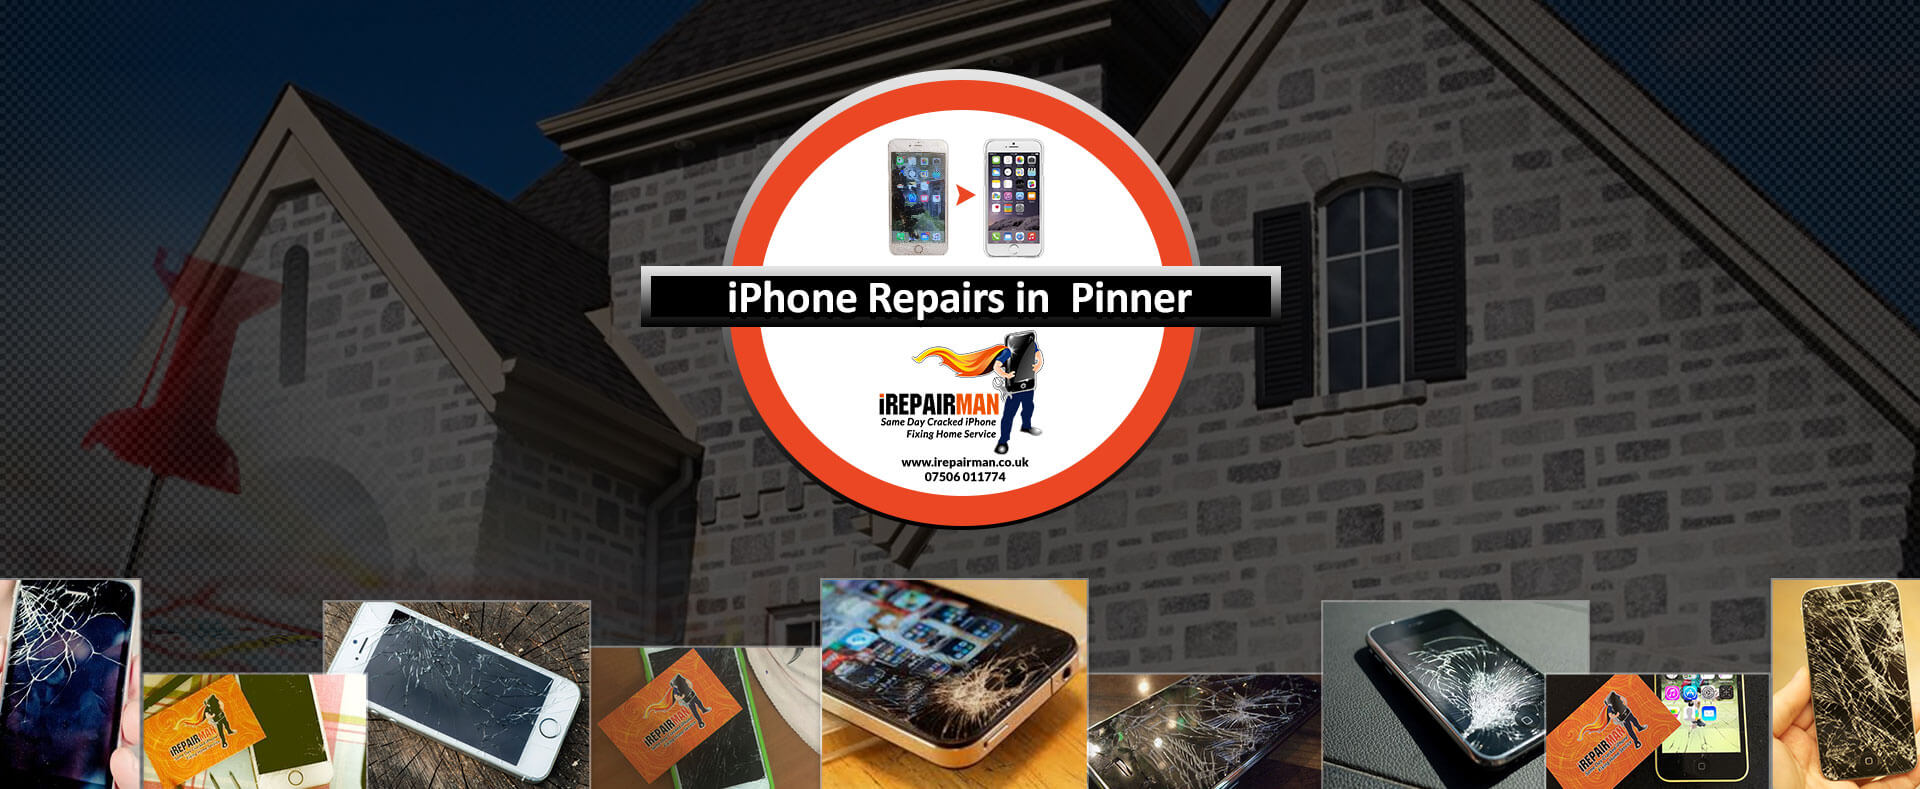 iPhone Repairs in Pinner